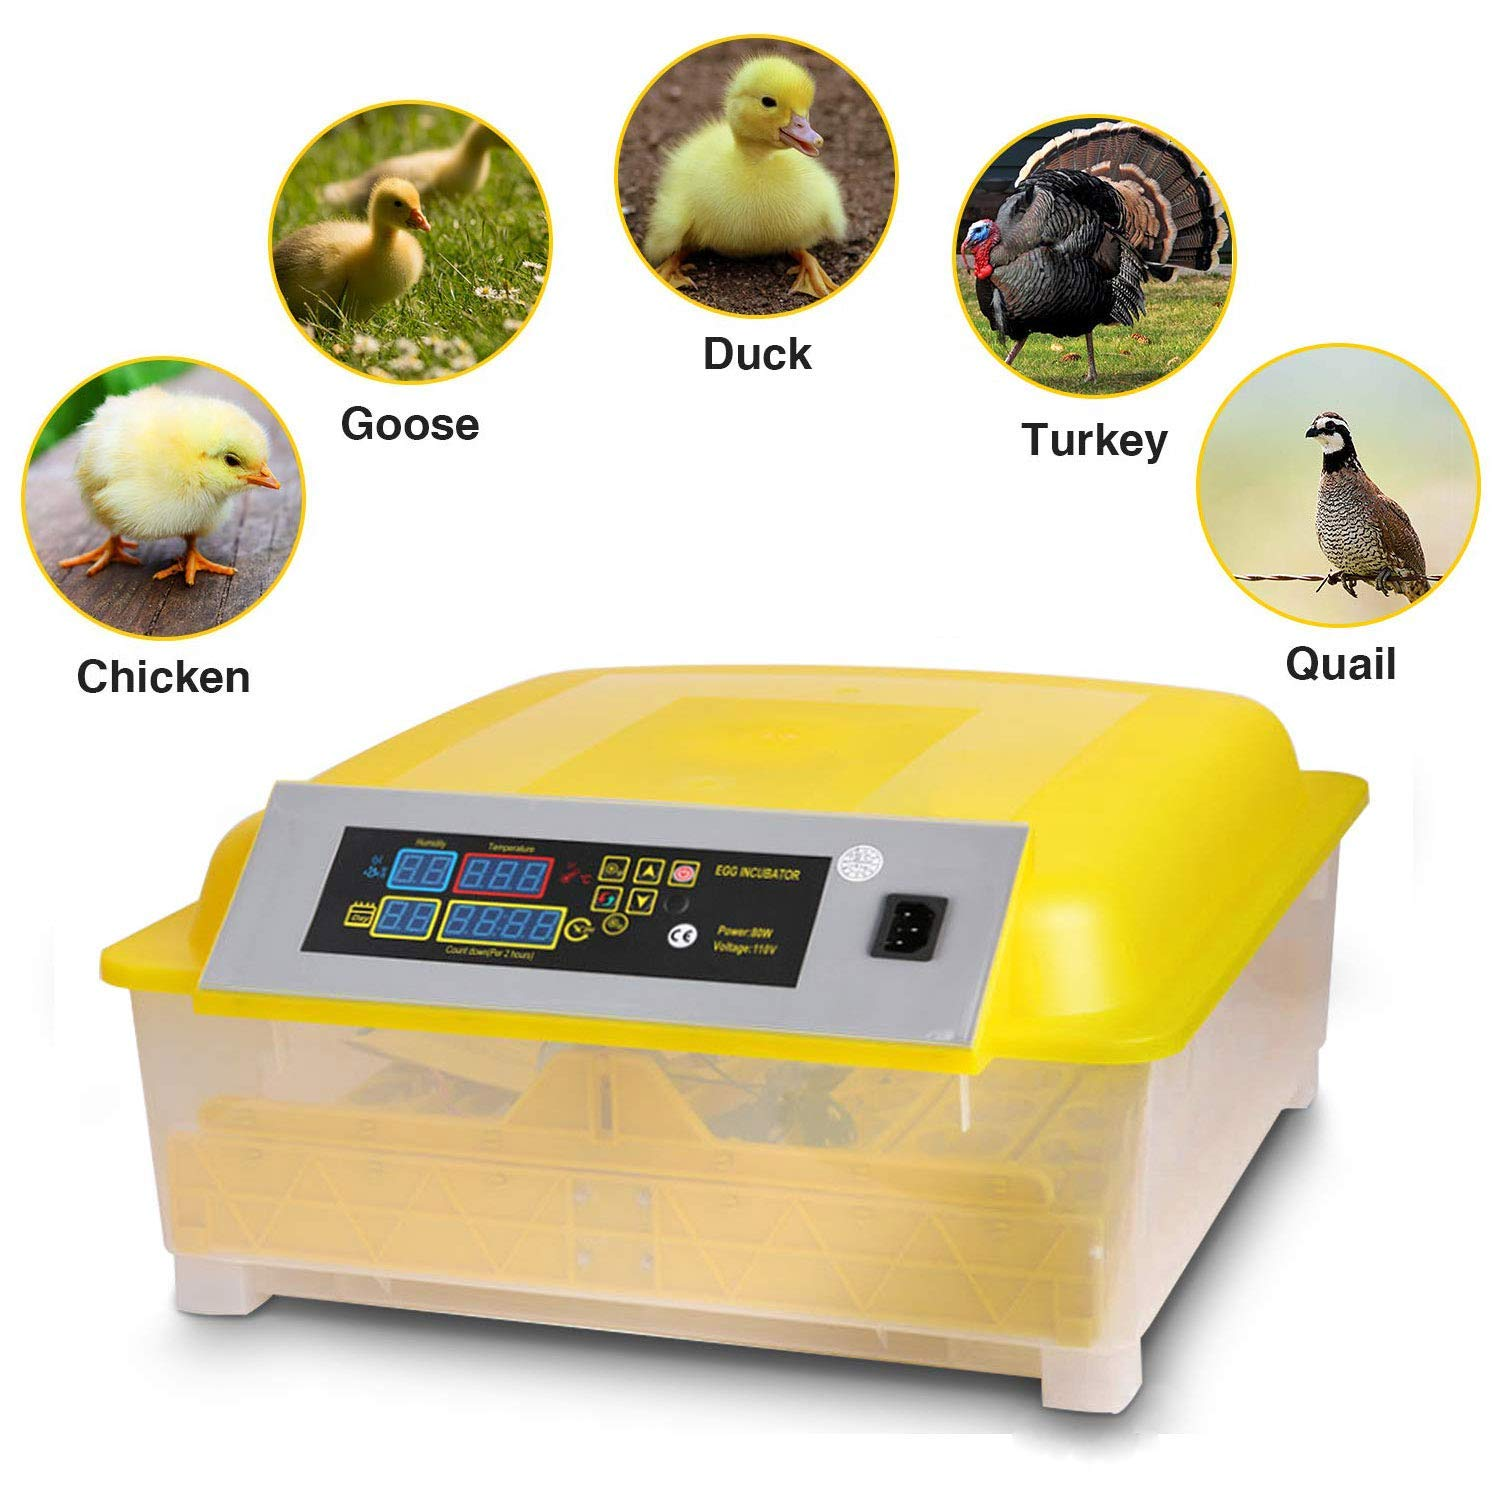 Noeler Egg Incubator Digital Automatic Incubators with Egg Turning,Chicken Duck Goose Quail Birds Fertile Eggs for Hatching (48 Egg Incubator) by Noeler